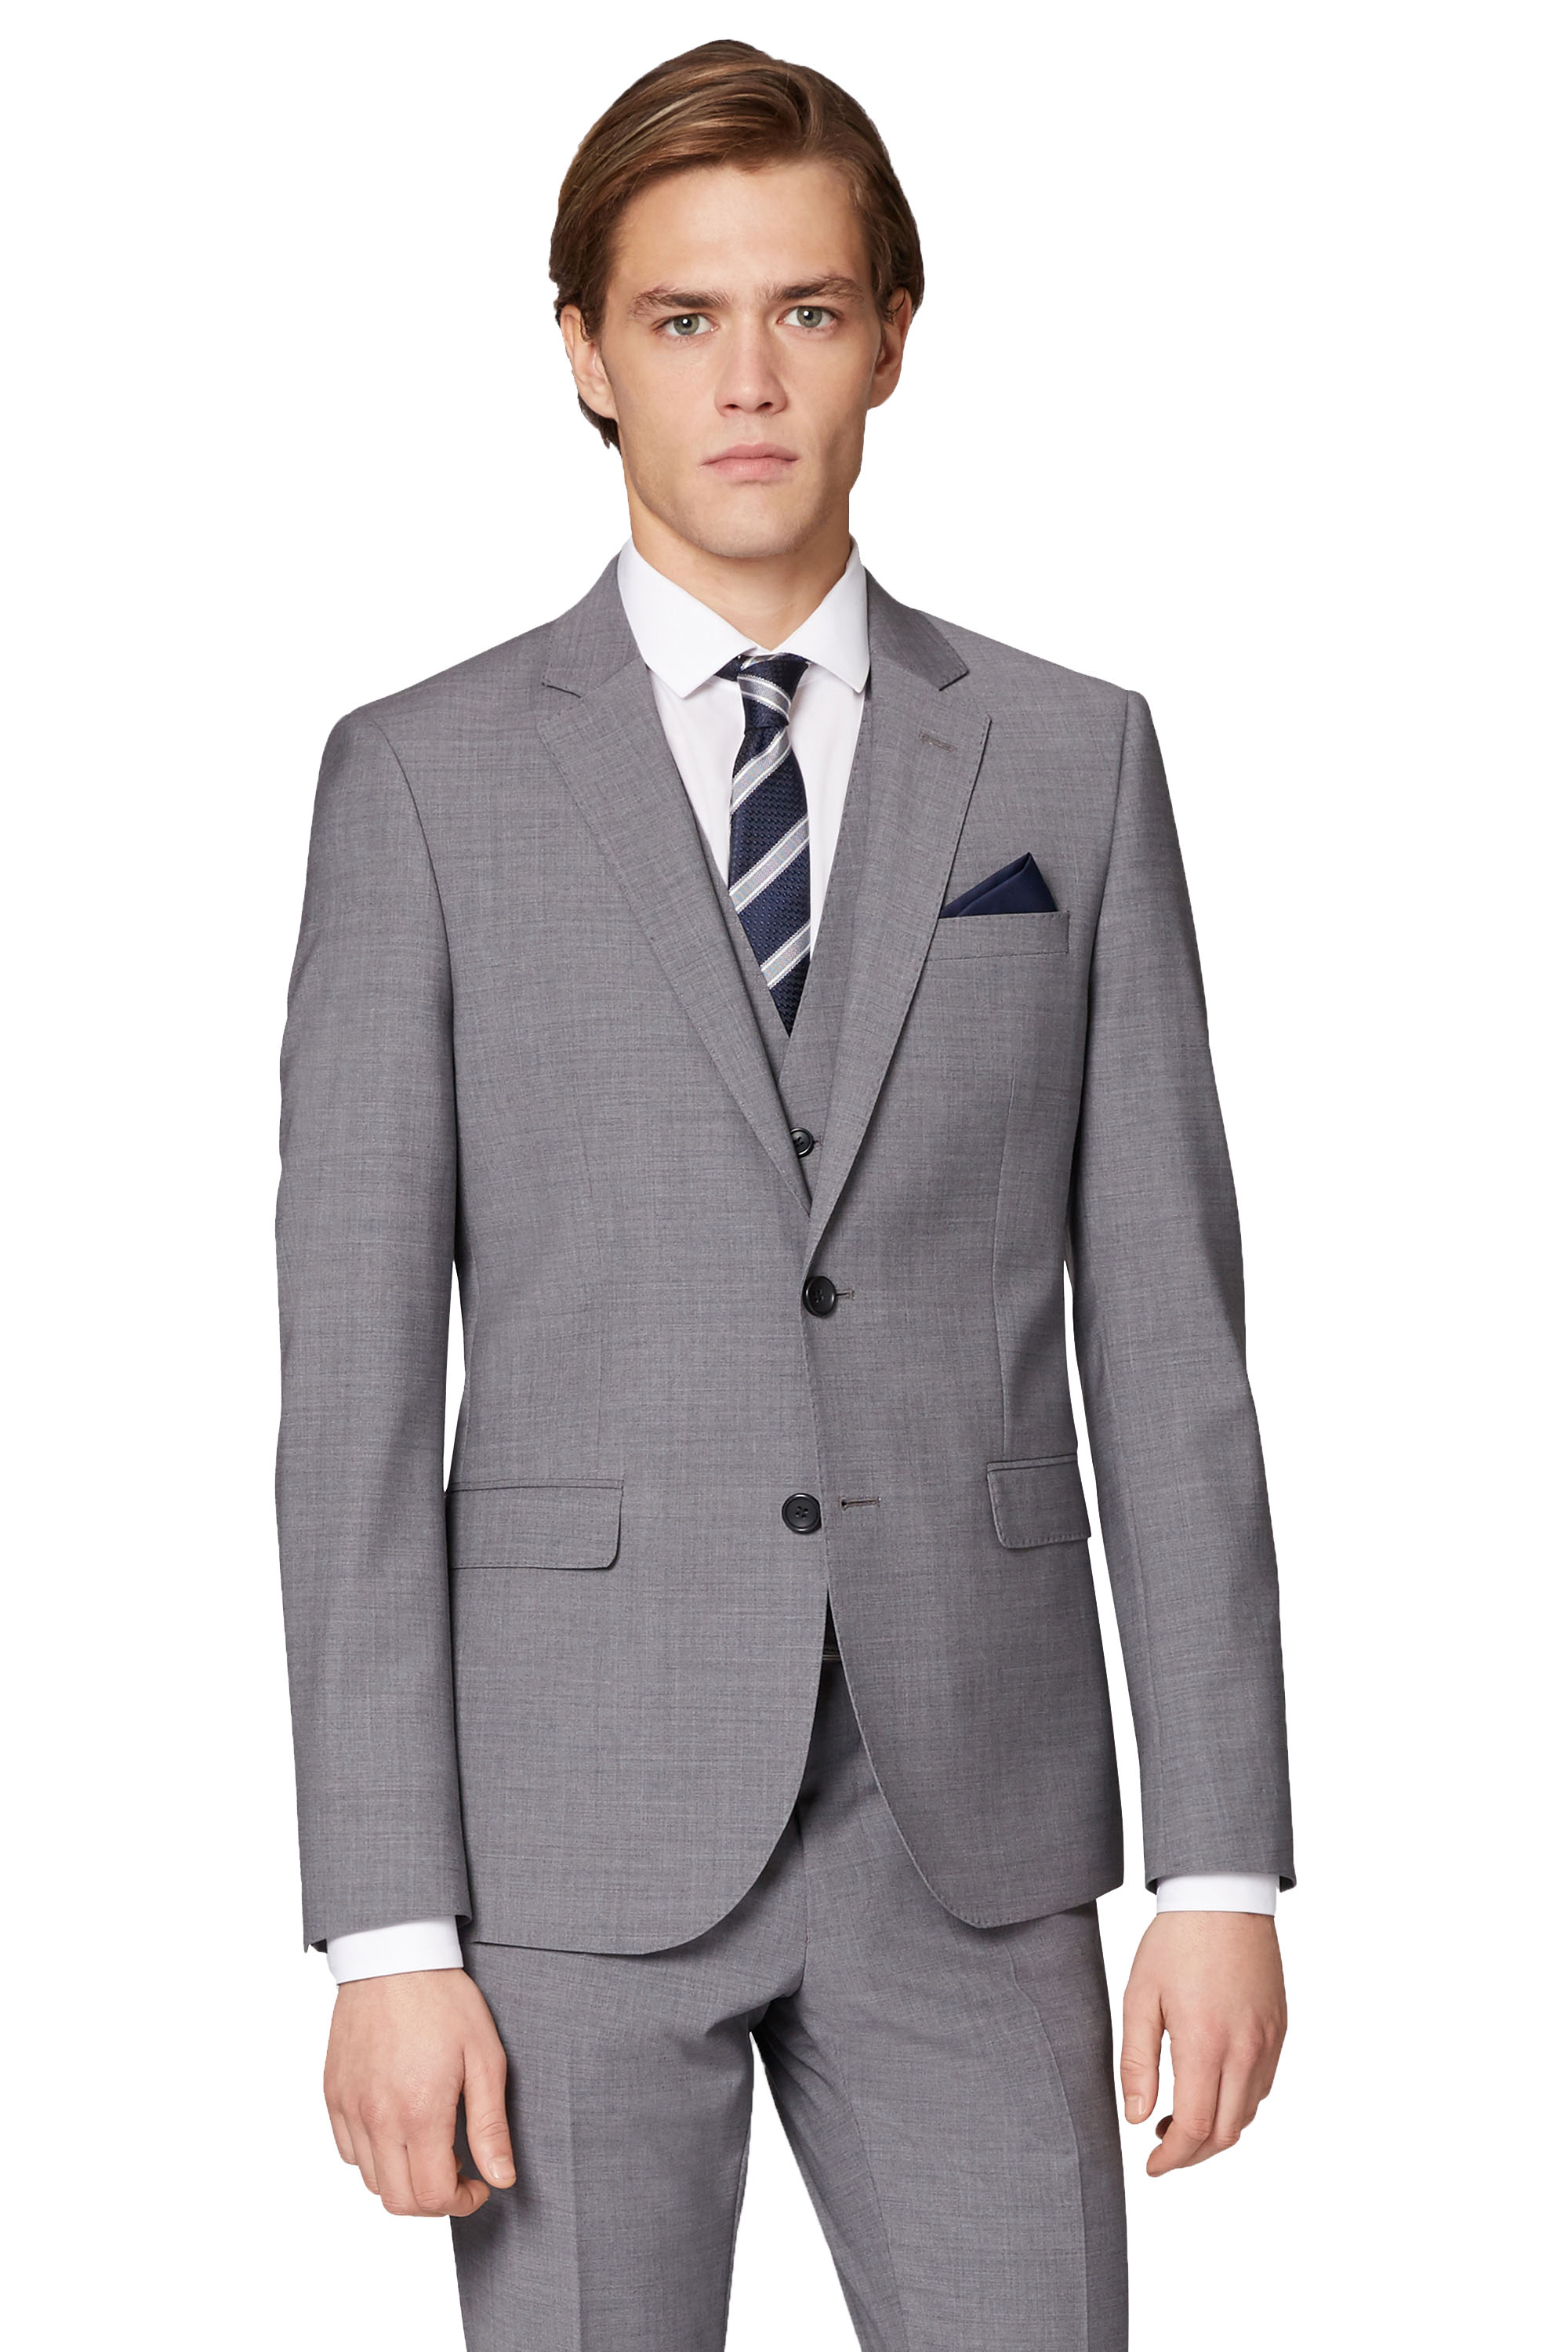 d2dfa1062 Details about Moss London Performance Mens Light Grey Suit Jacket Skinny  Fit Single Breasted